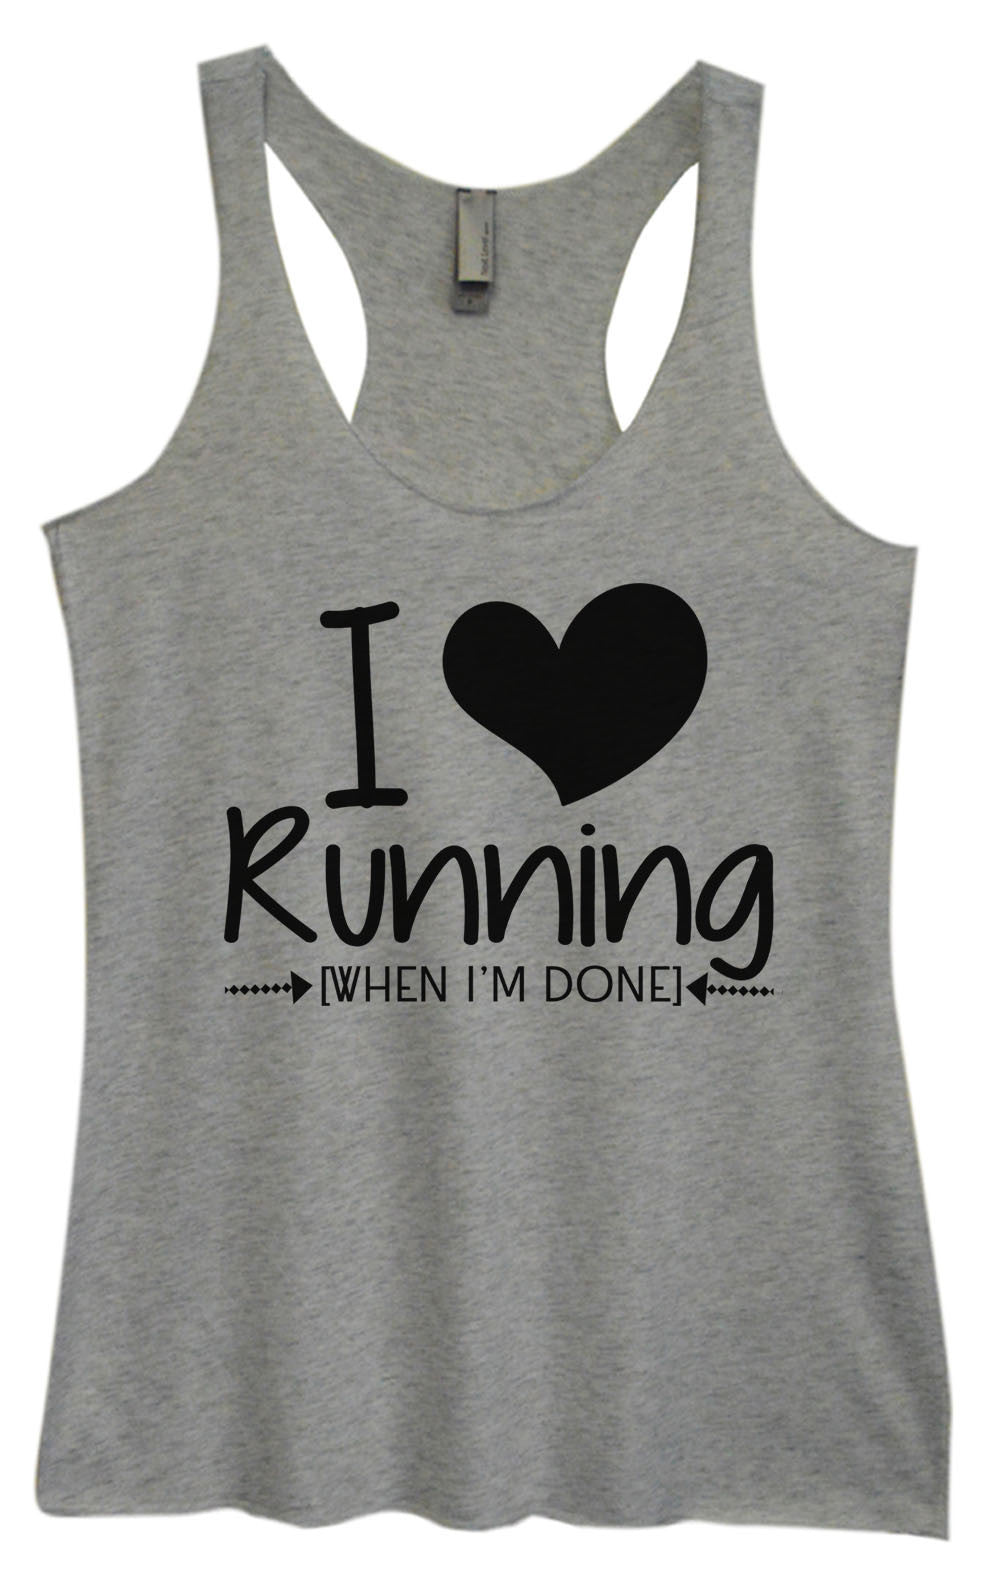 Womens Fashion Triblend Tank Top - I Love Running [When I'm Done] - Tri-1013 - Funny Shirts Tank Tops Burnouts and Triblends  - 2